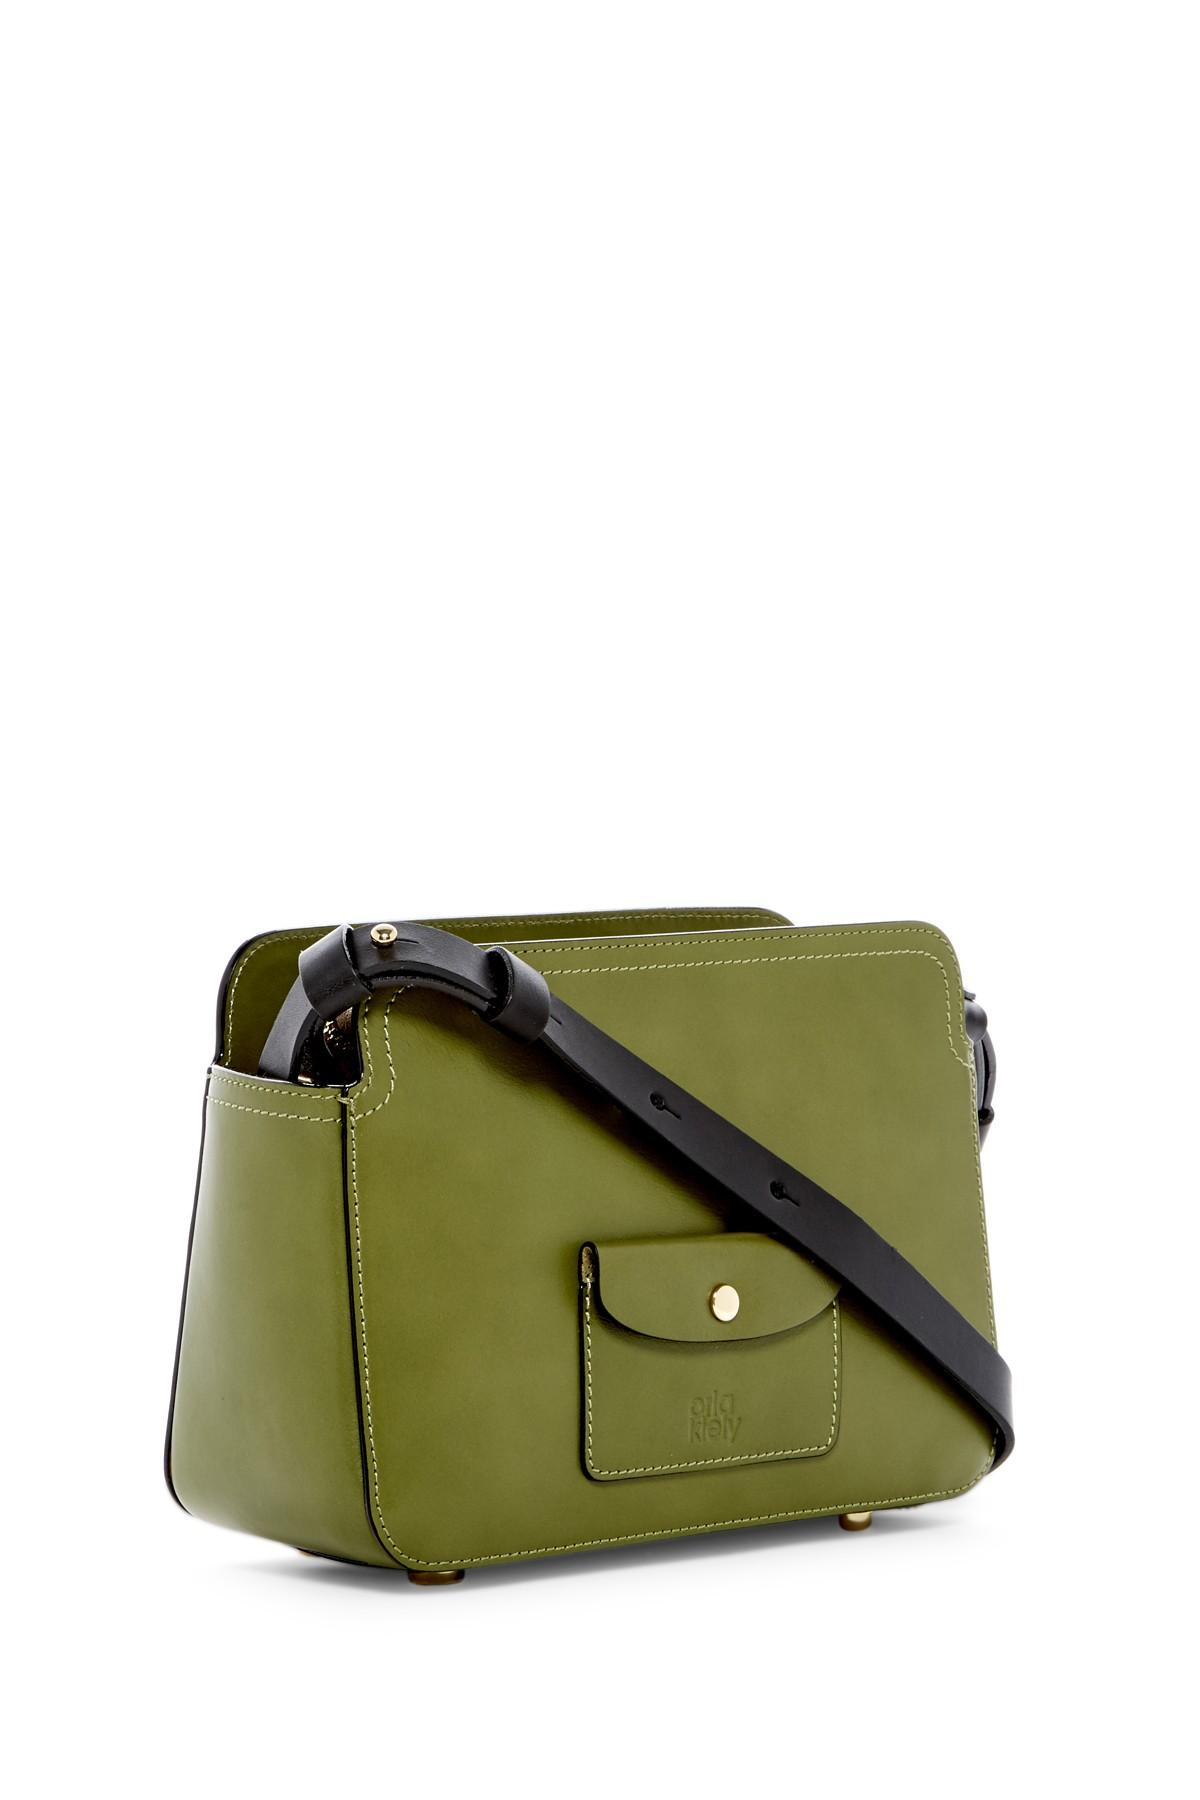 d7d3752c26f67 Lyst - Orla Kiely Embossed Stem Small Jeanette Leather Bag in Green